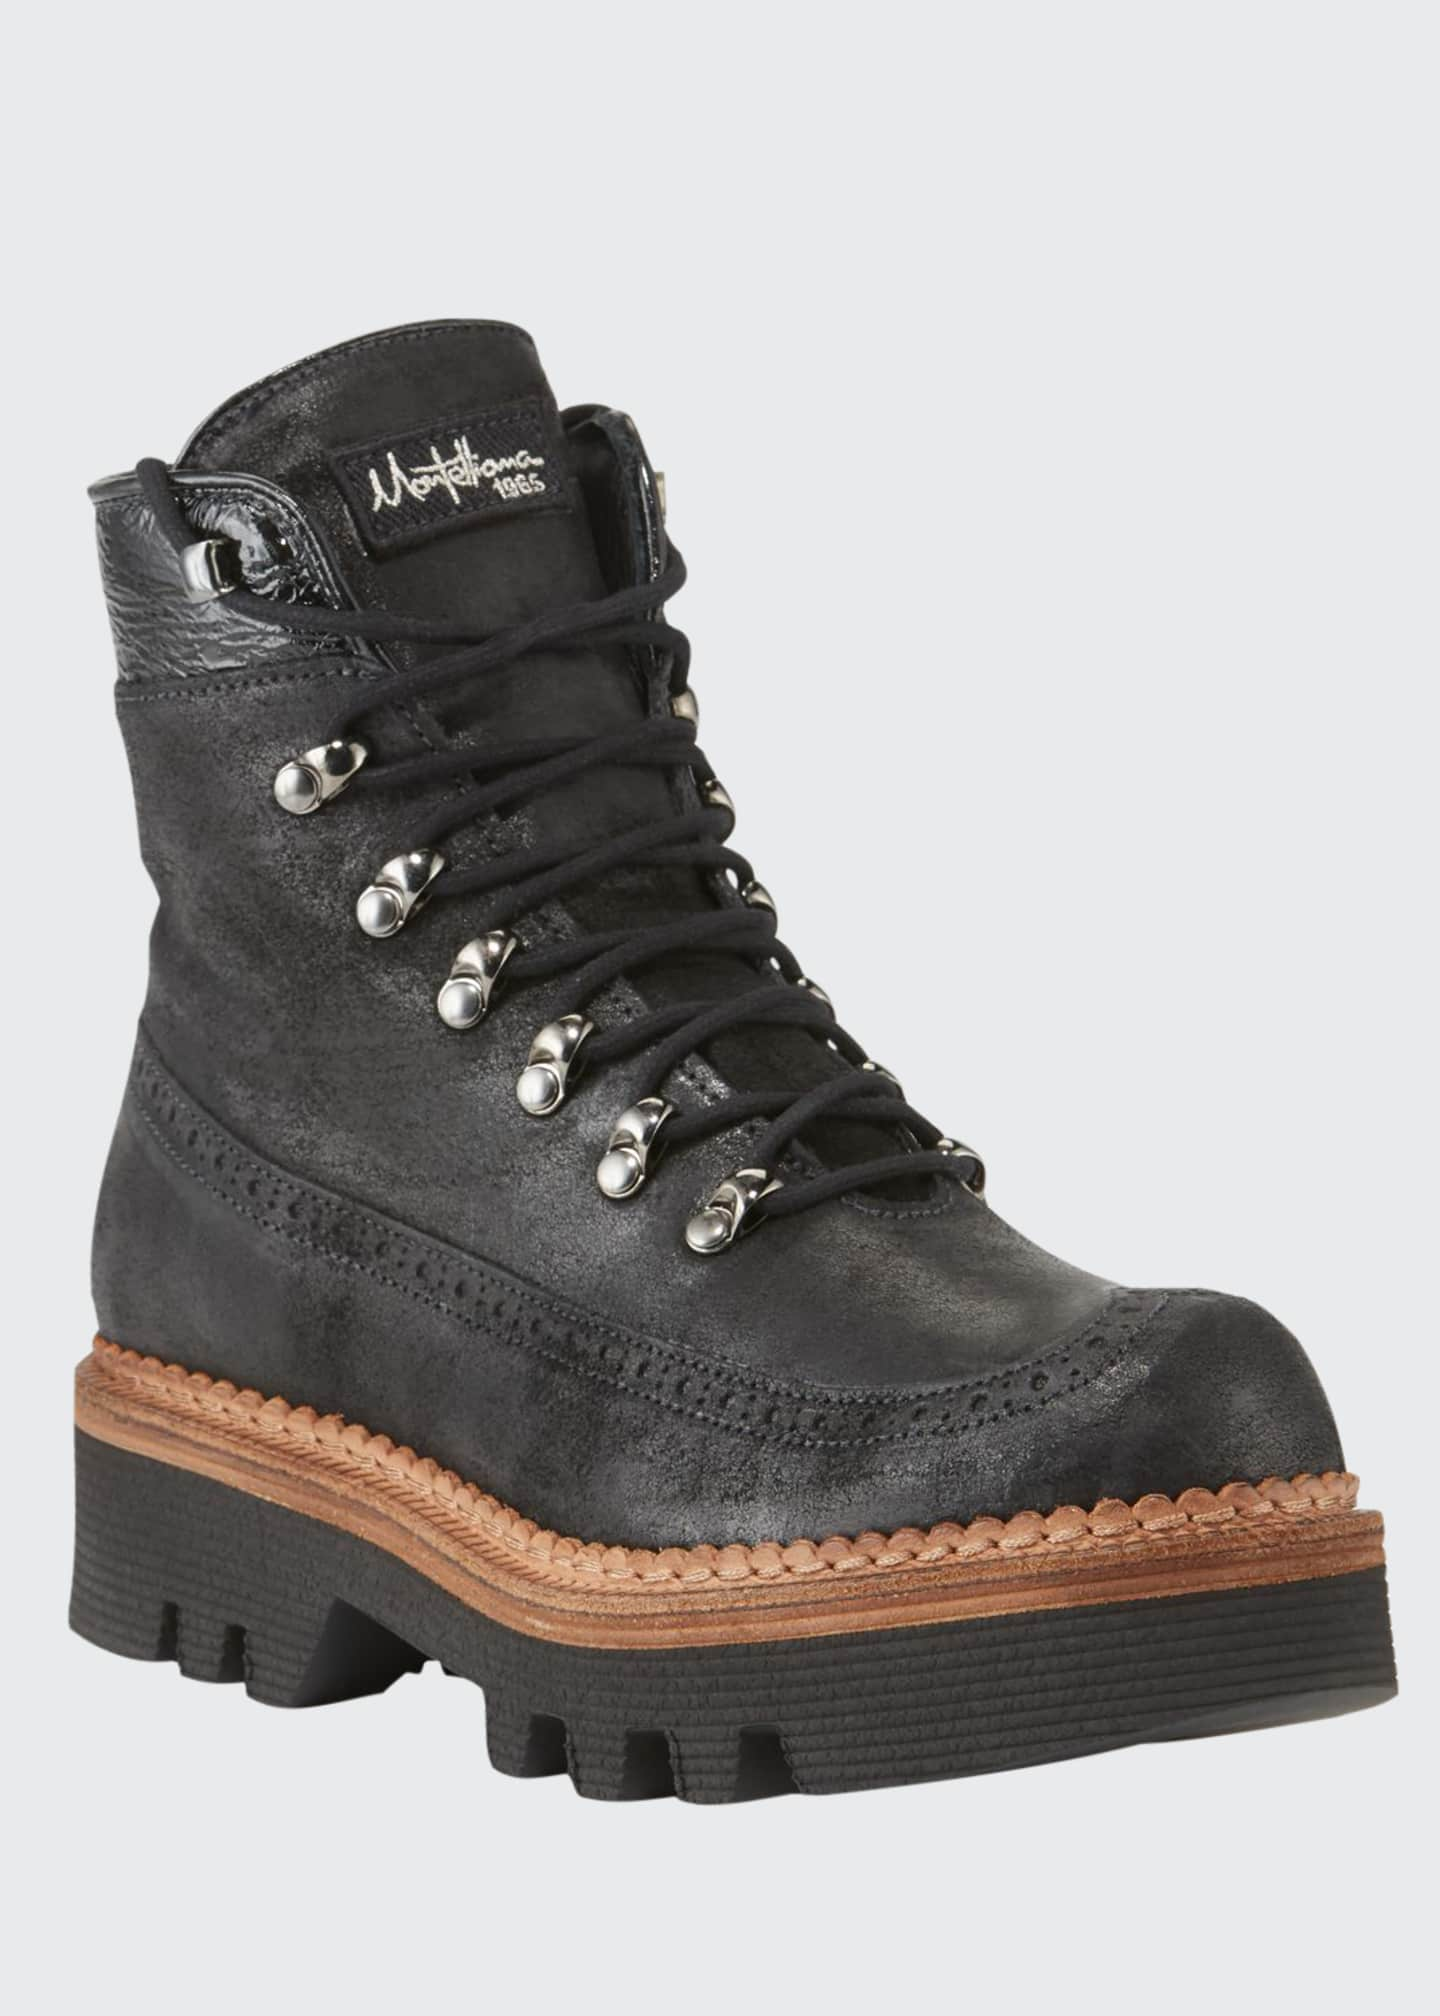 Montelliana 1965 Rondine Leather Lace-Up Boots